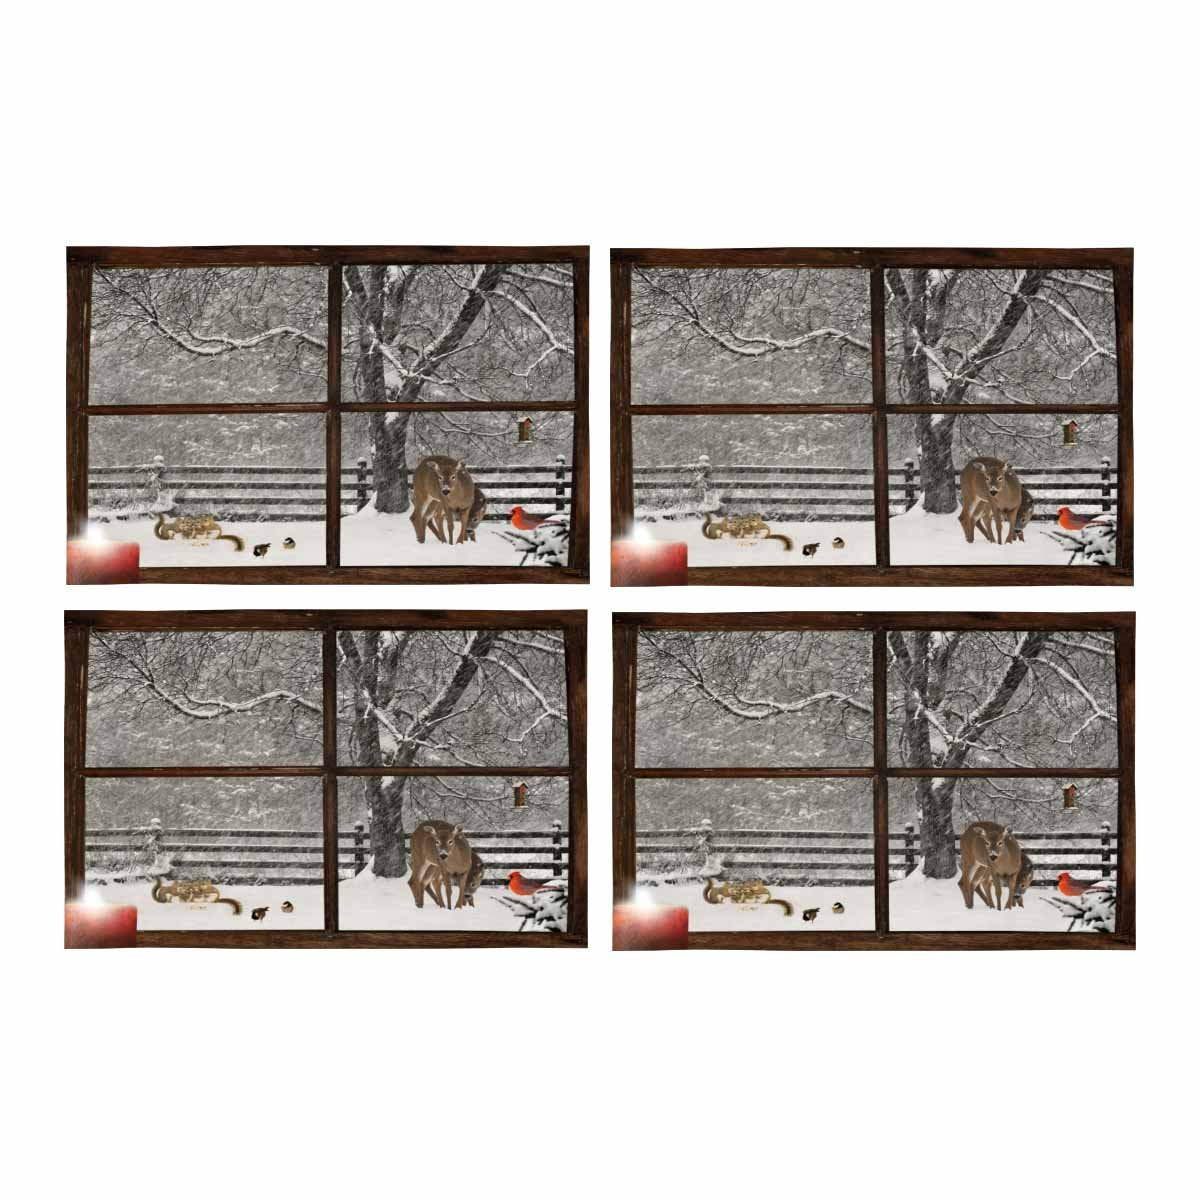 InterestPrint Mother Baby Deer Baby Squirrels Chickadees Snowstorm Farm House Window Placemat Place Mat Set of 4, Table Place Mats for Kitchen Dining Table Restaurant Home Decor 12''x18''